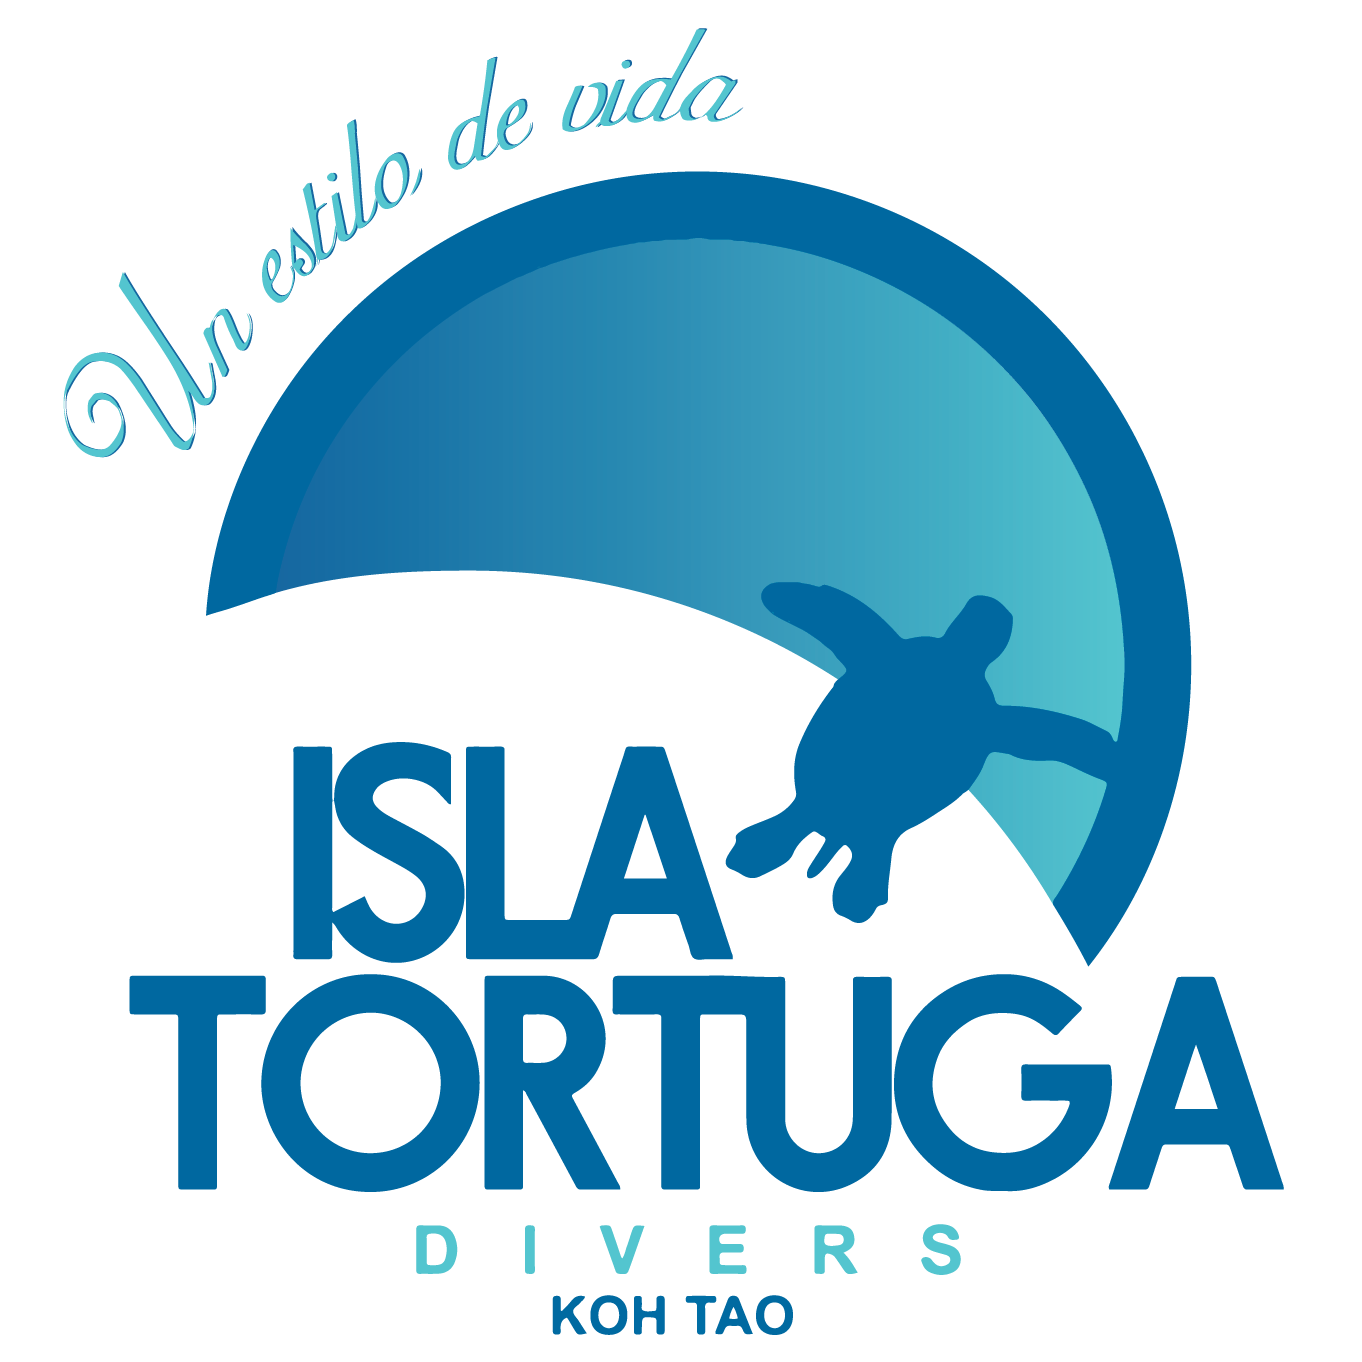 islatortugadivers.com koh tao logo identidad PADI advanced open water diver